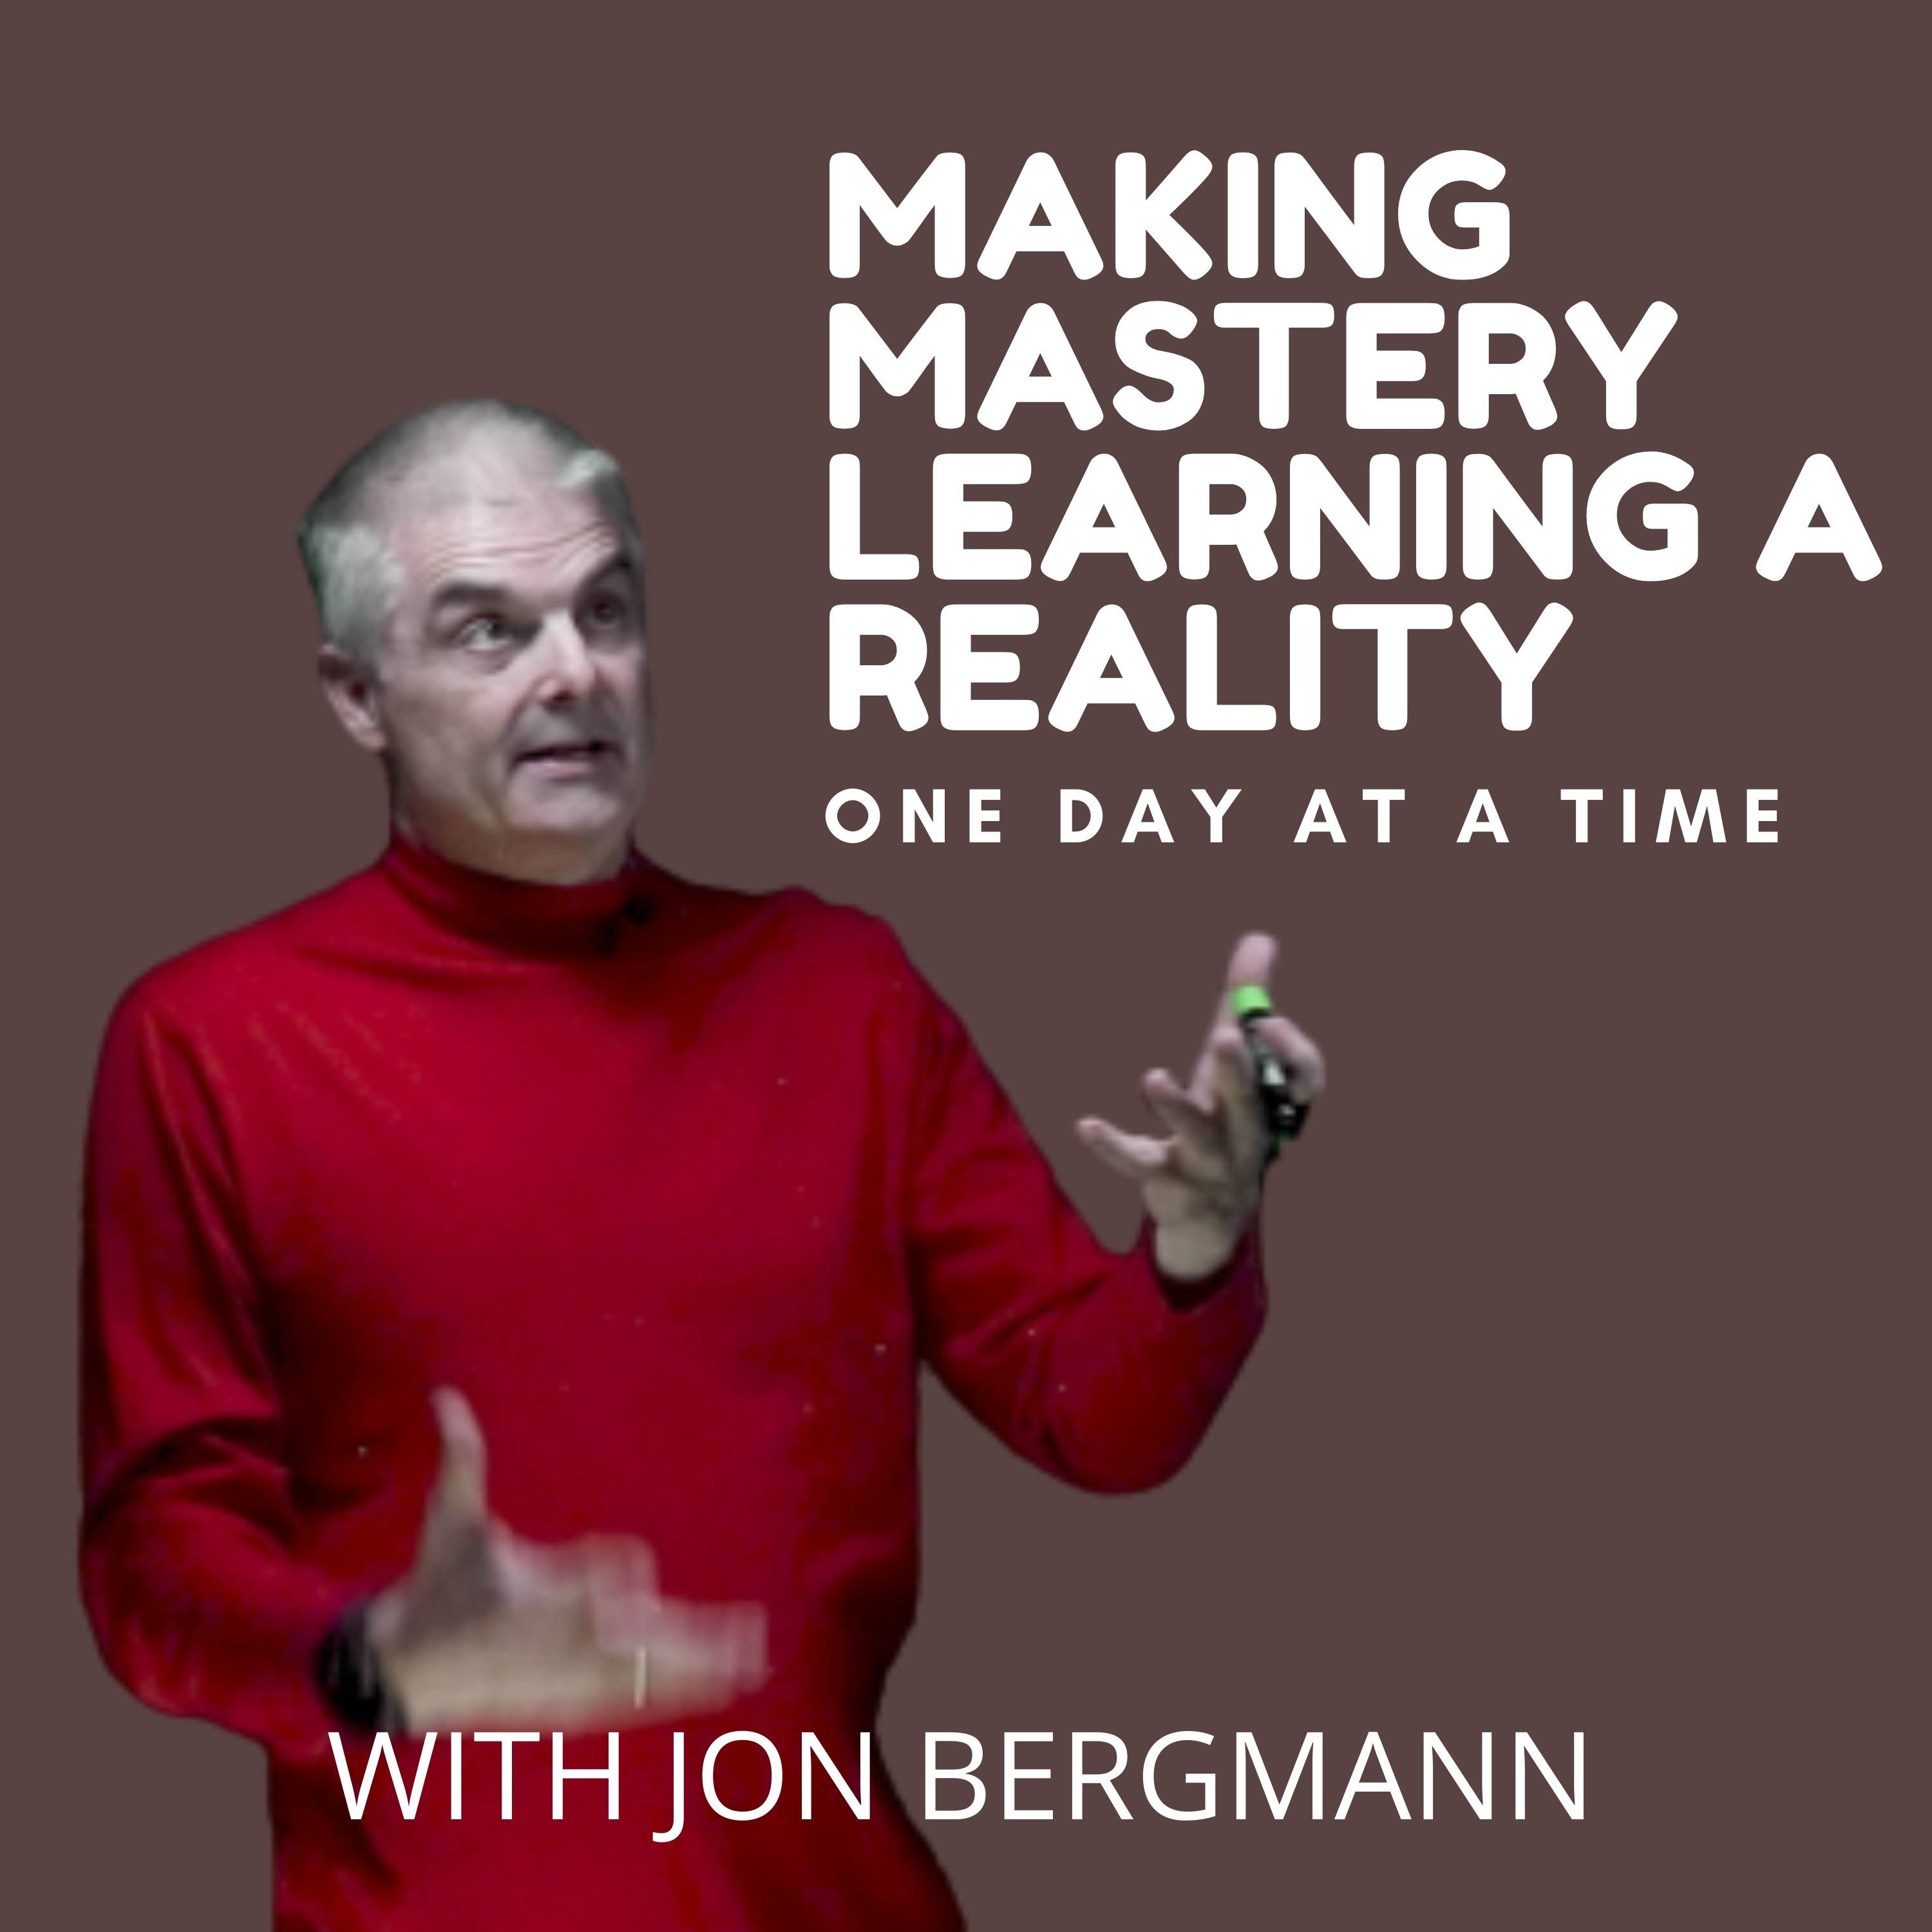 Making Mastery Learning a Reality One Day at a Time